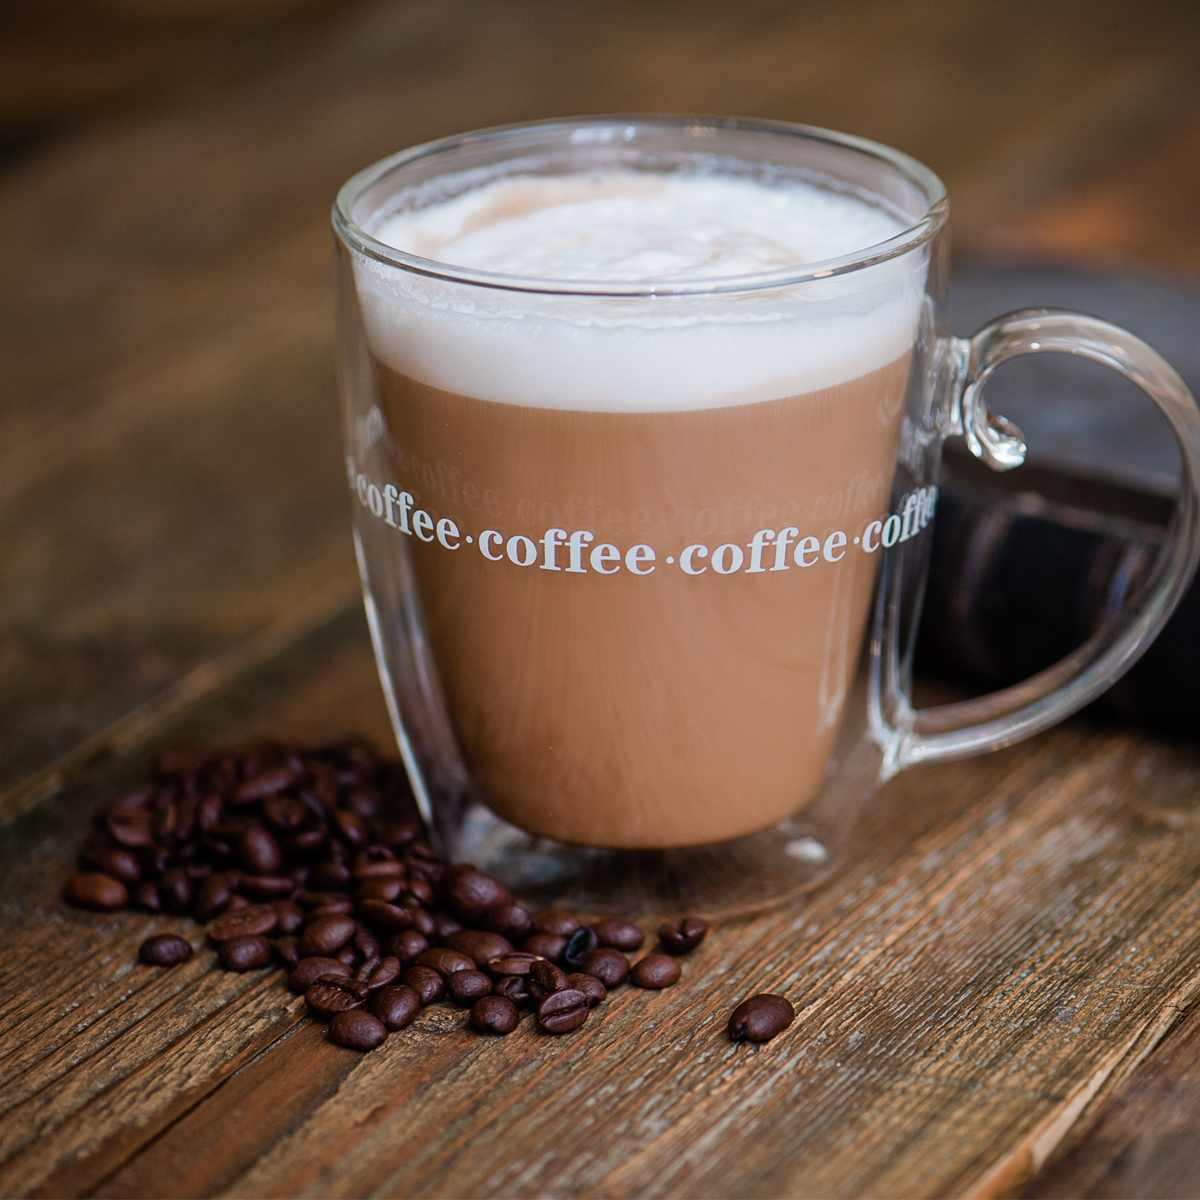 Details Xmas Insulated Thermo Handle About Layer Double 500ml Wall Gift With Mug Large Coffee vN8PymOwn0